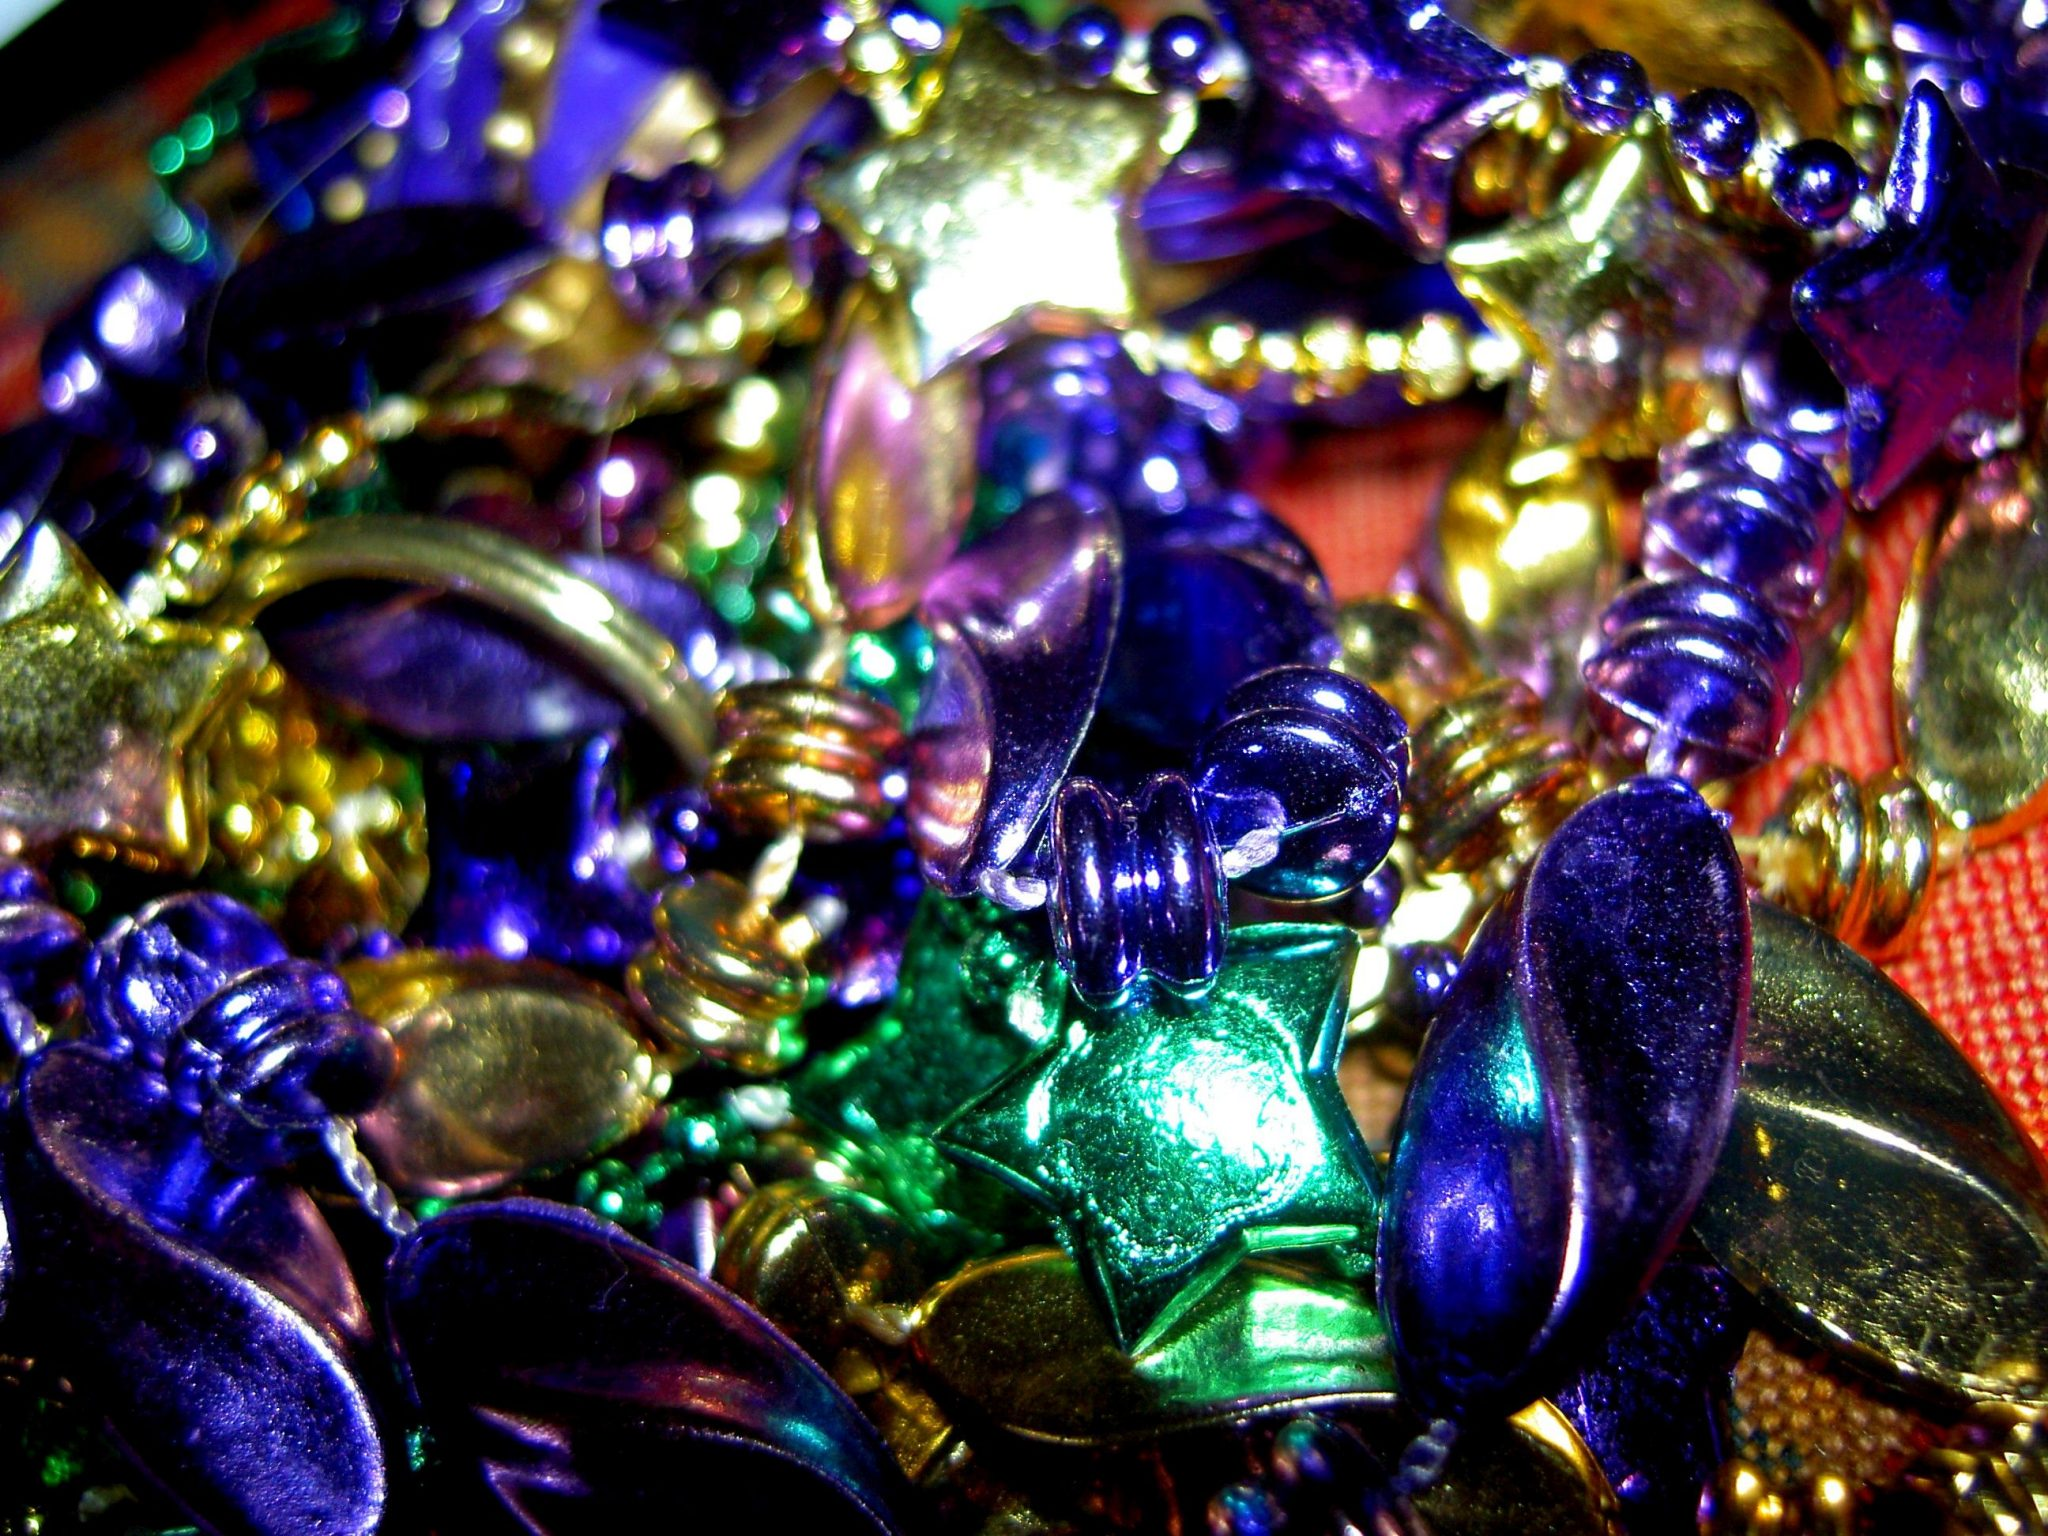 How to Host a Backyard Mardi Gras Theme Party